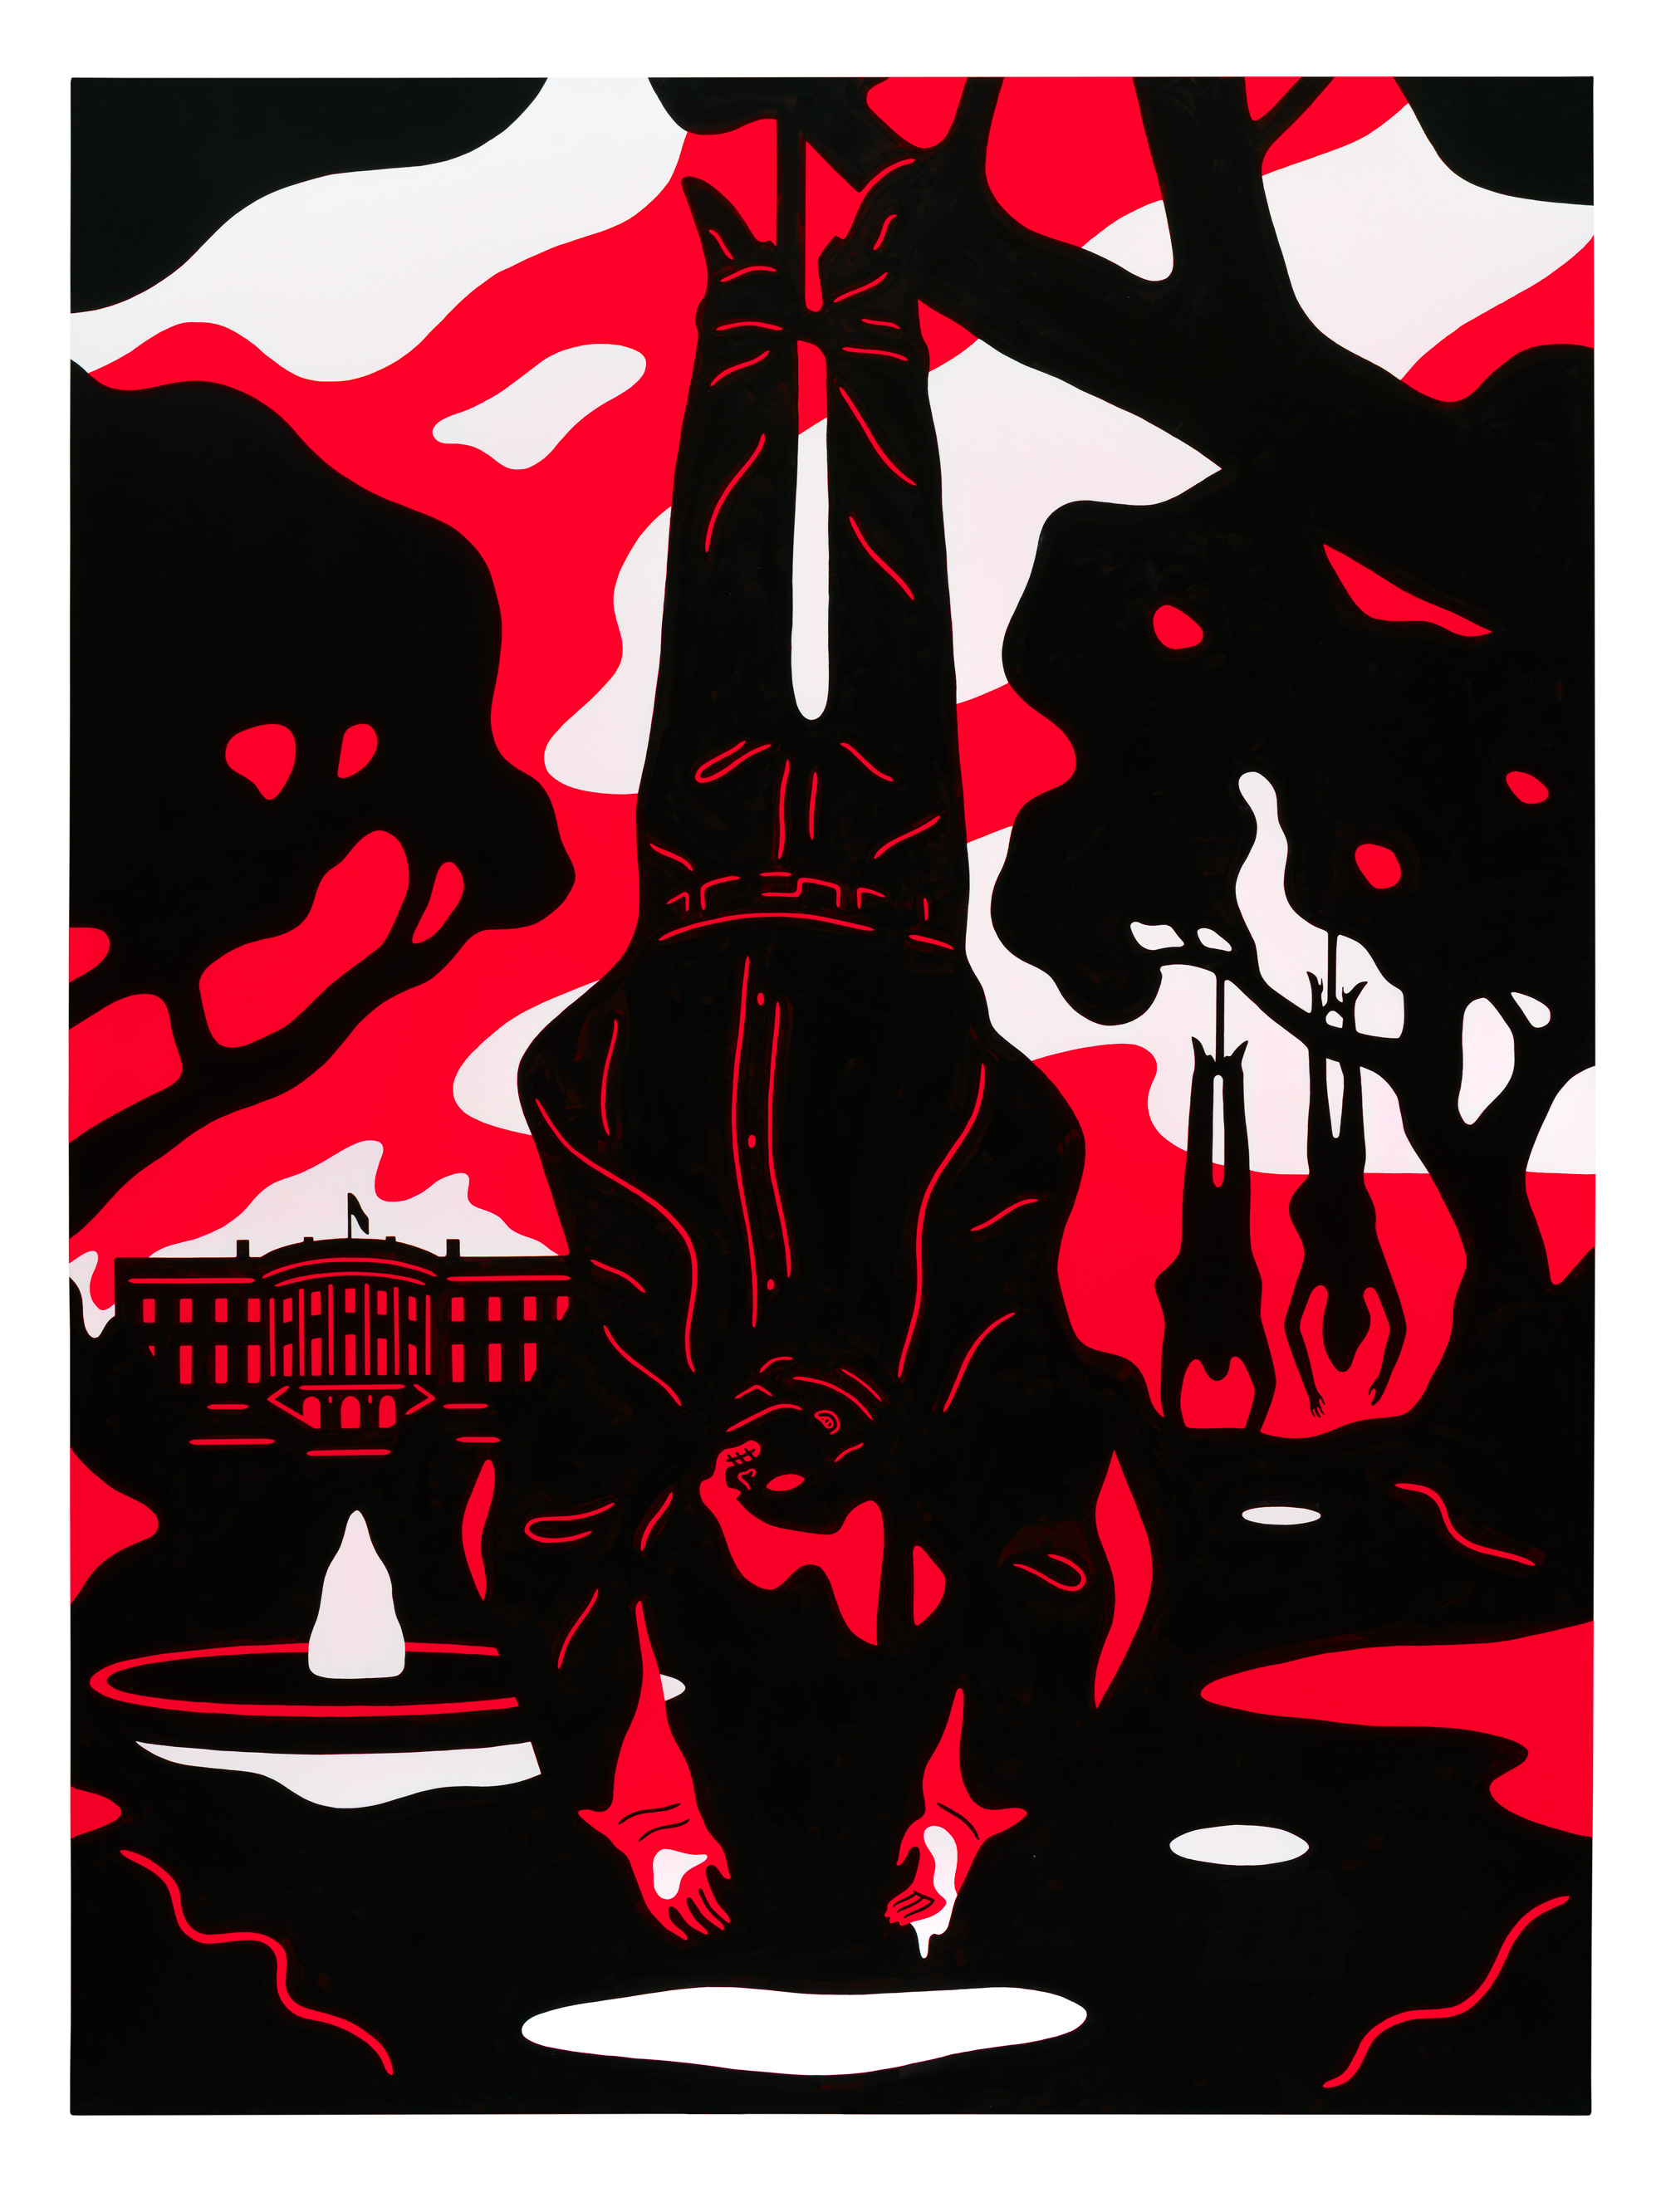 Absolute-Power-cleon-peterson-amadeus